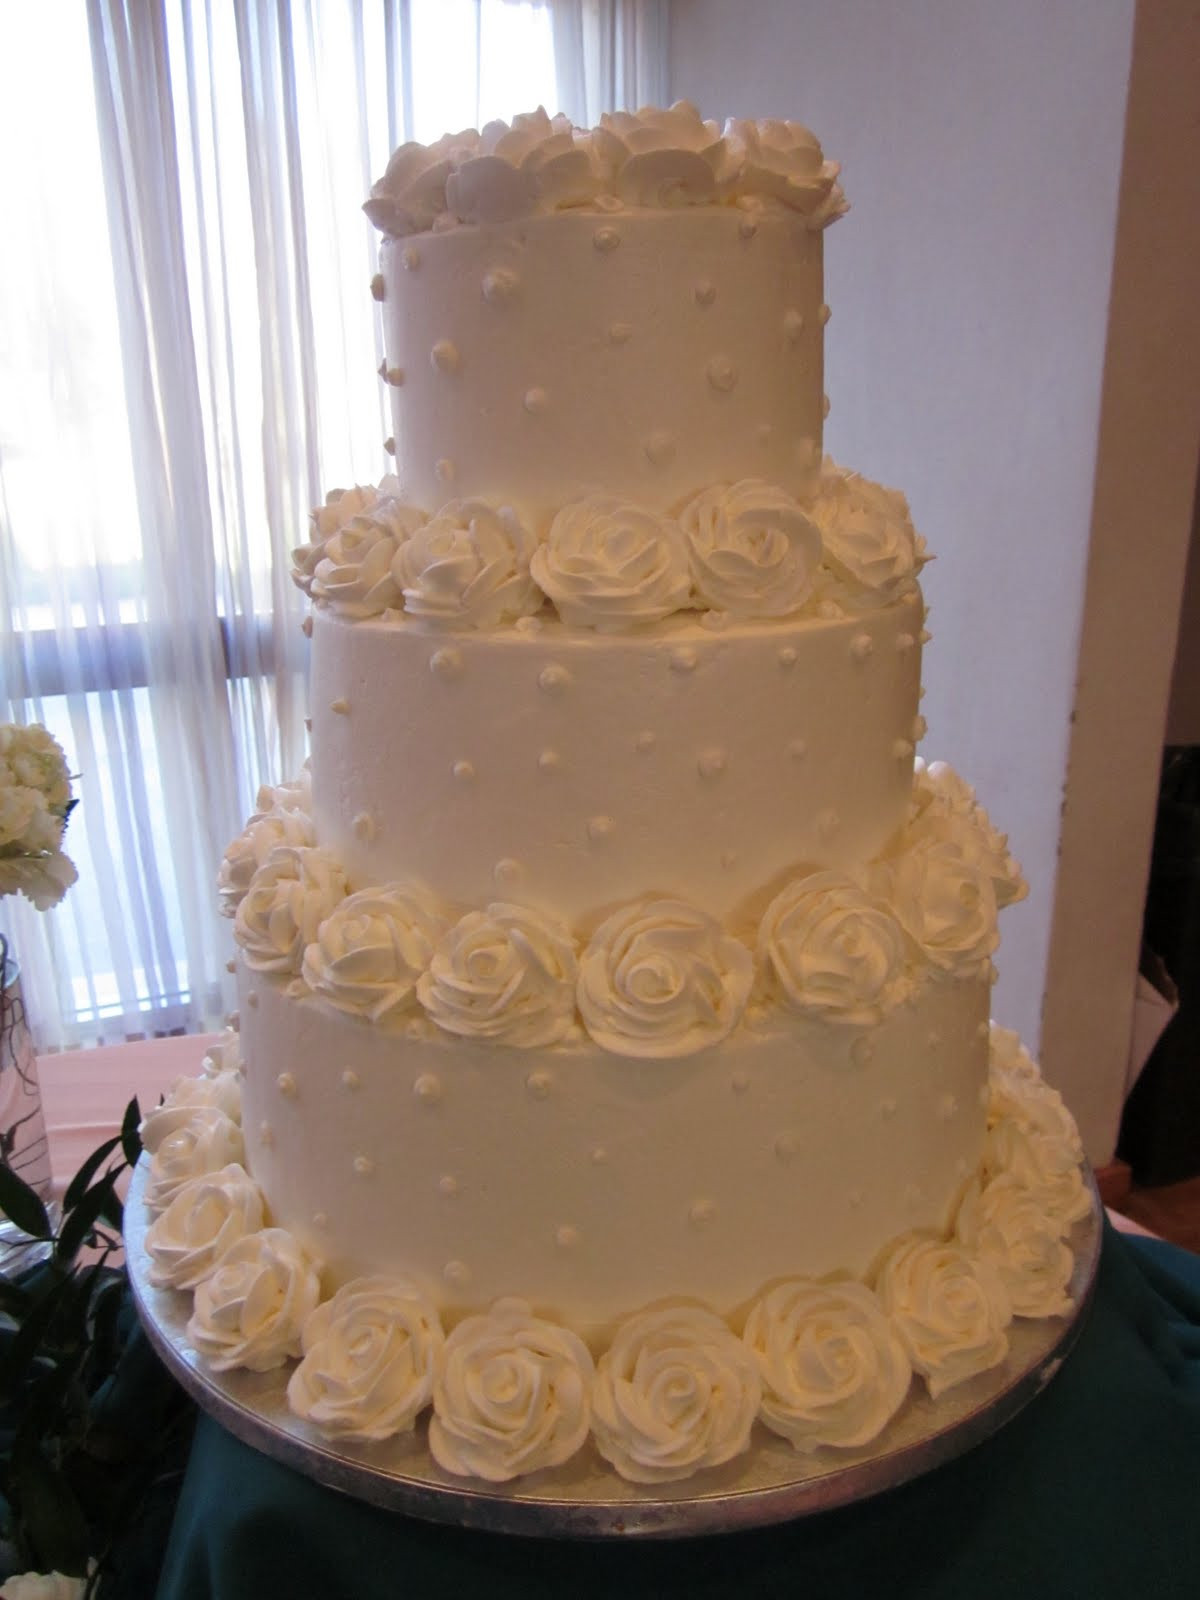 Publix Bakery Wedding Cakes the top 20 Ideas About 10 Tips On How to Choose Your Publix Wedding Cakes Idea